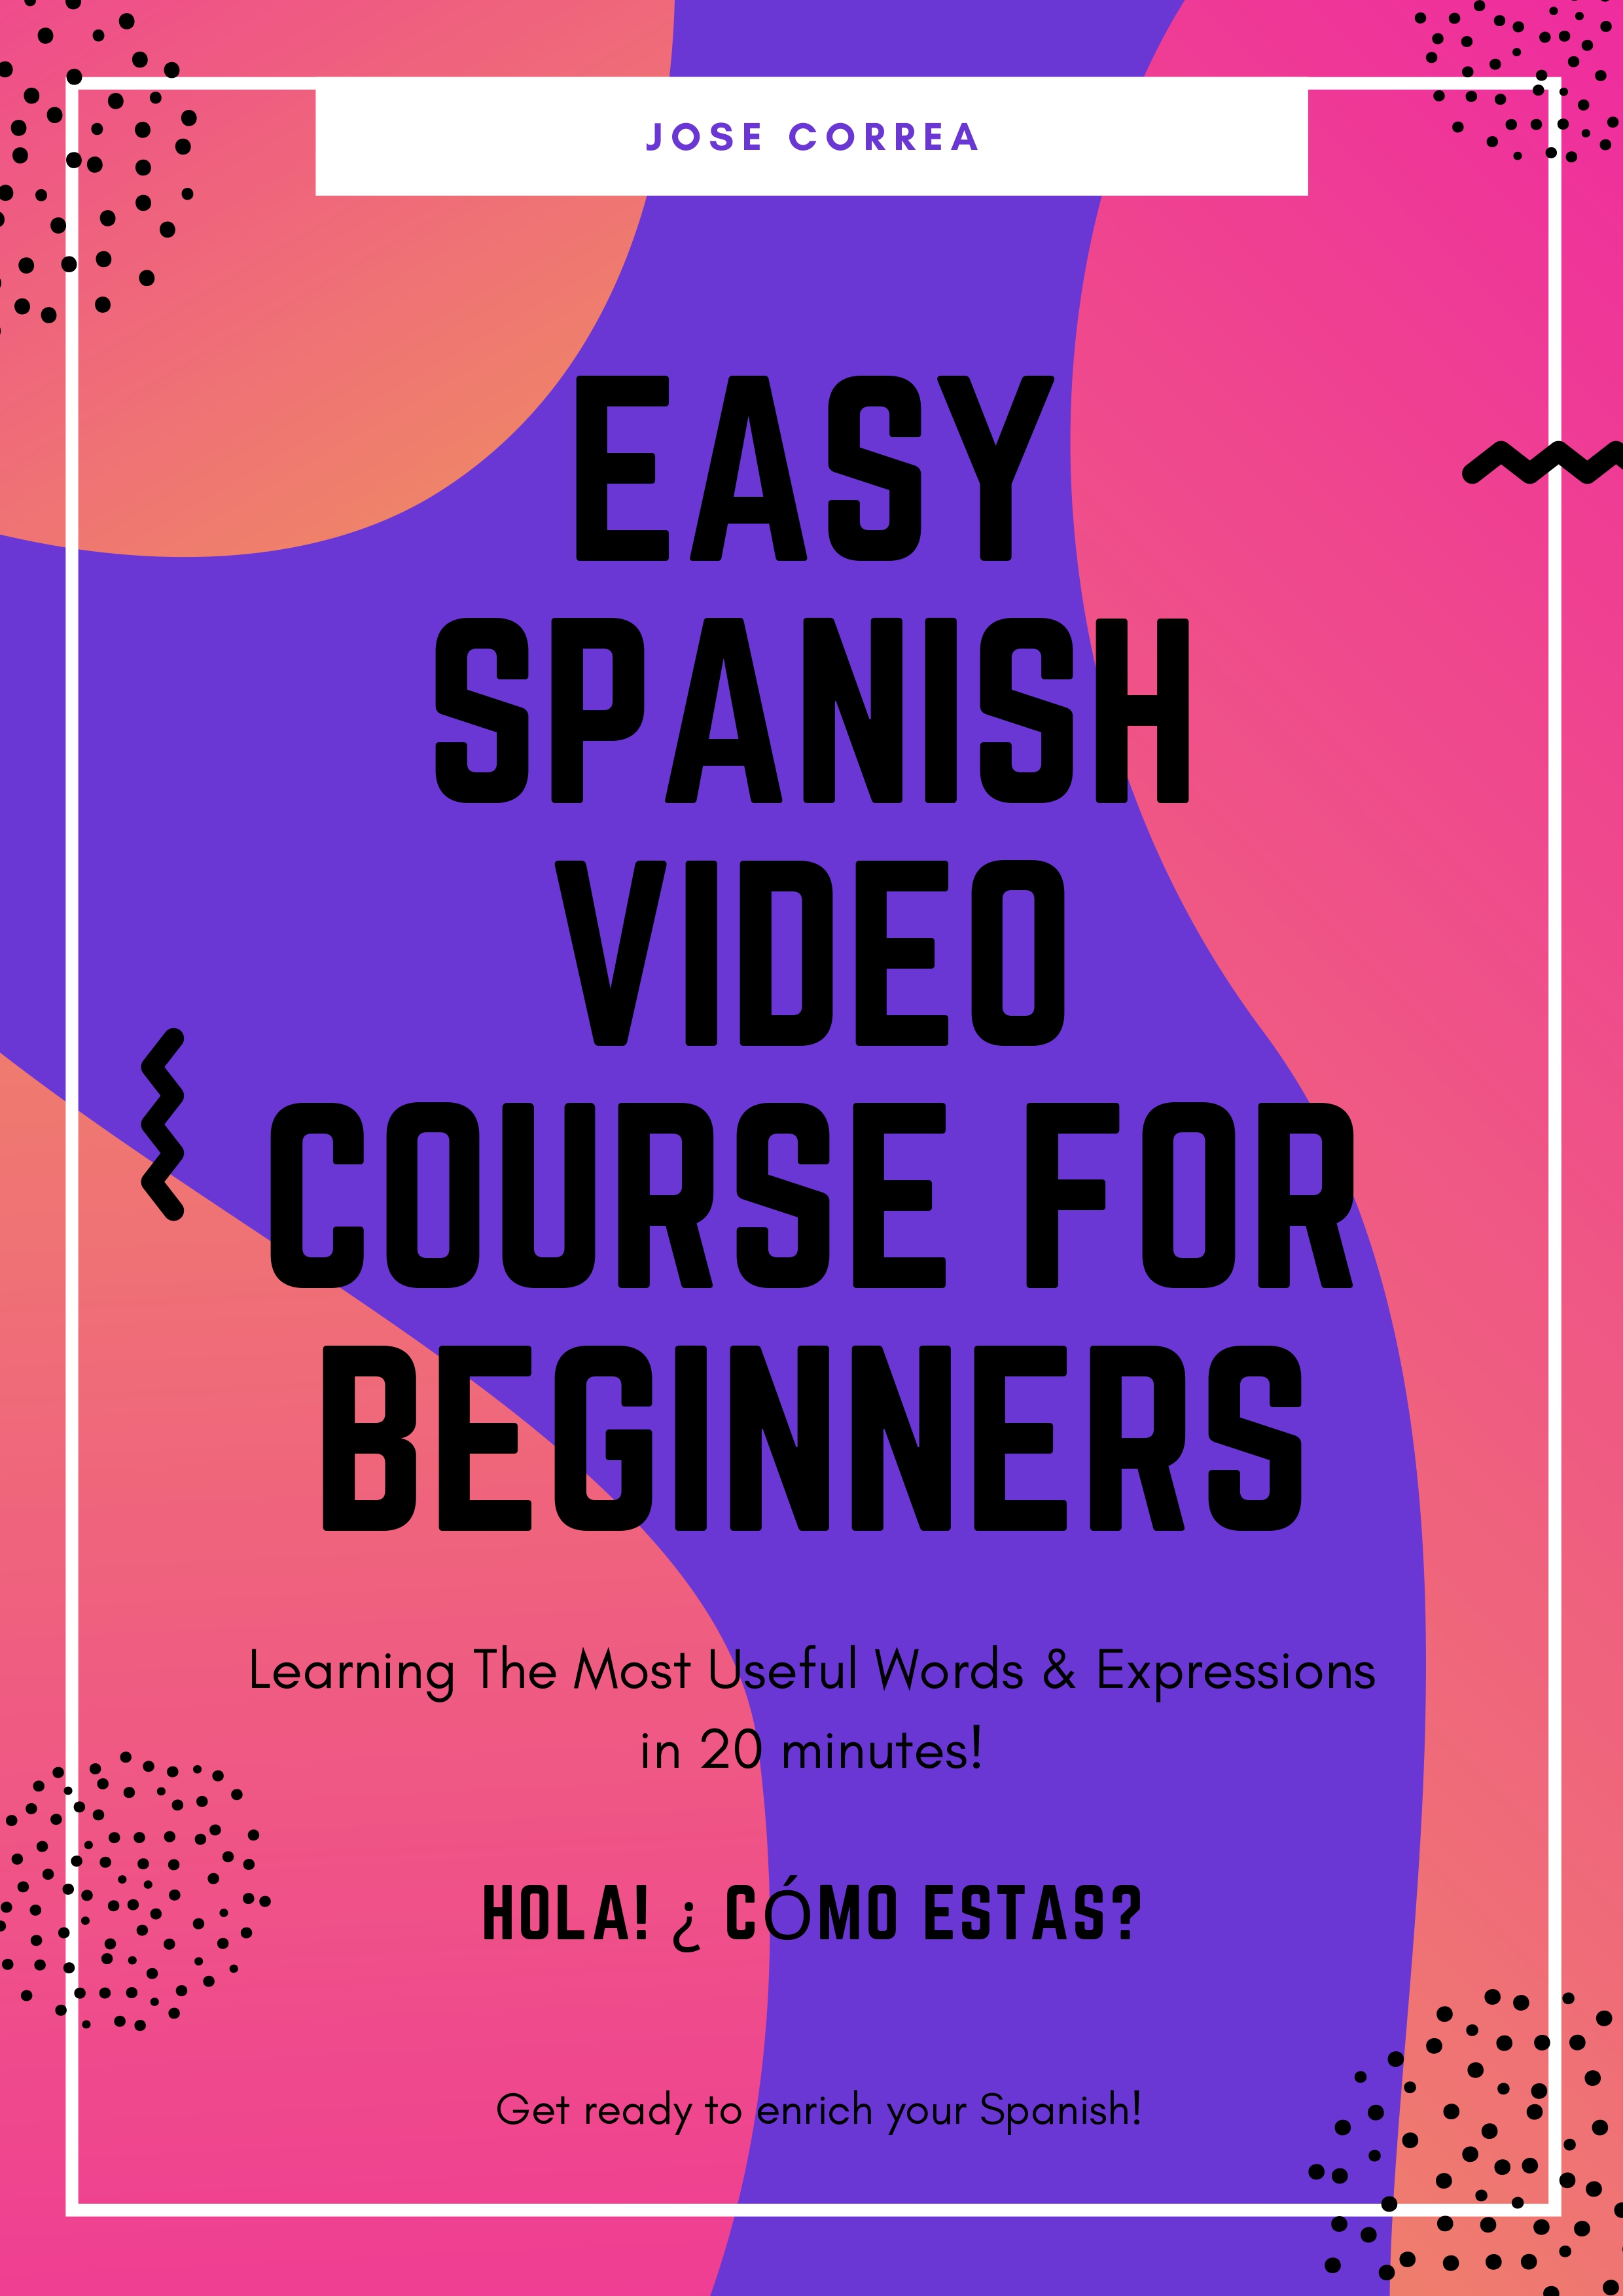 Easy Spanish Video Course for Begginers - The 20 Minute Lesson